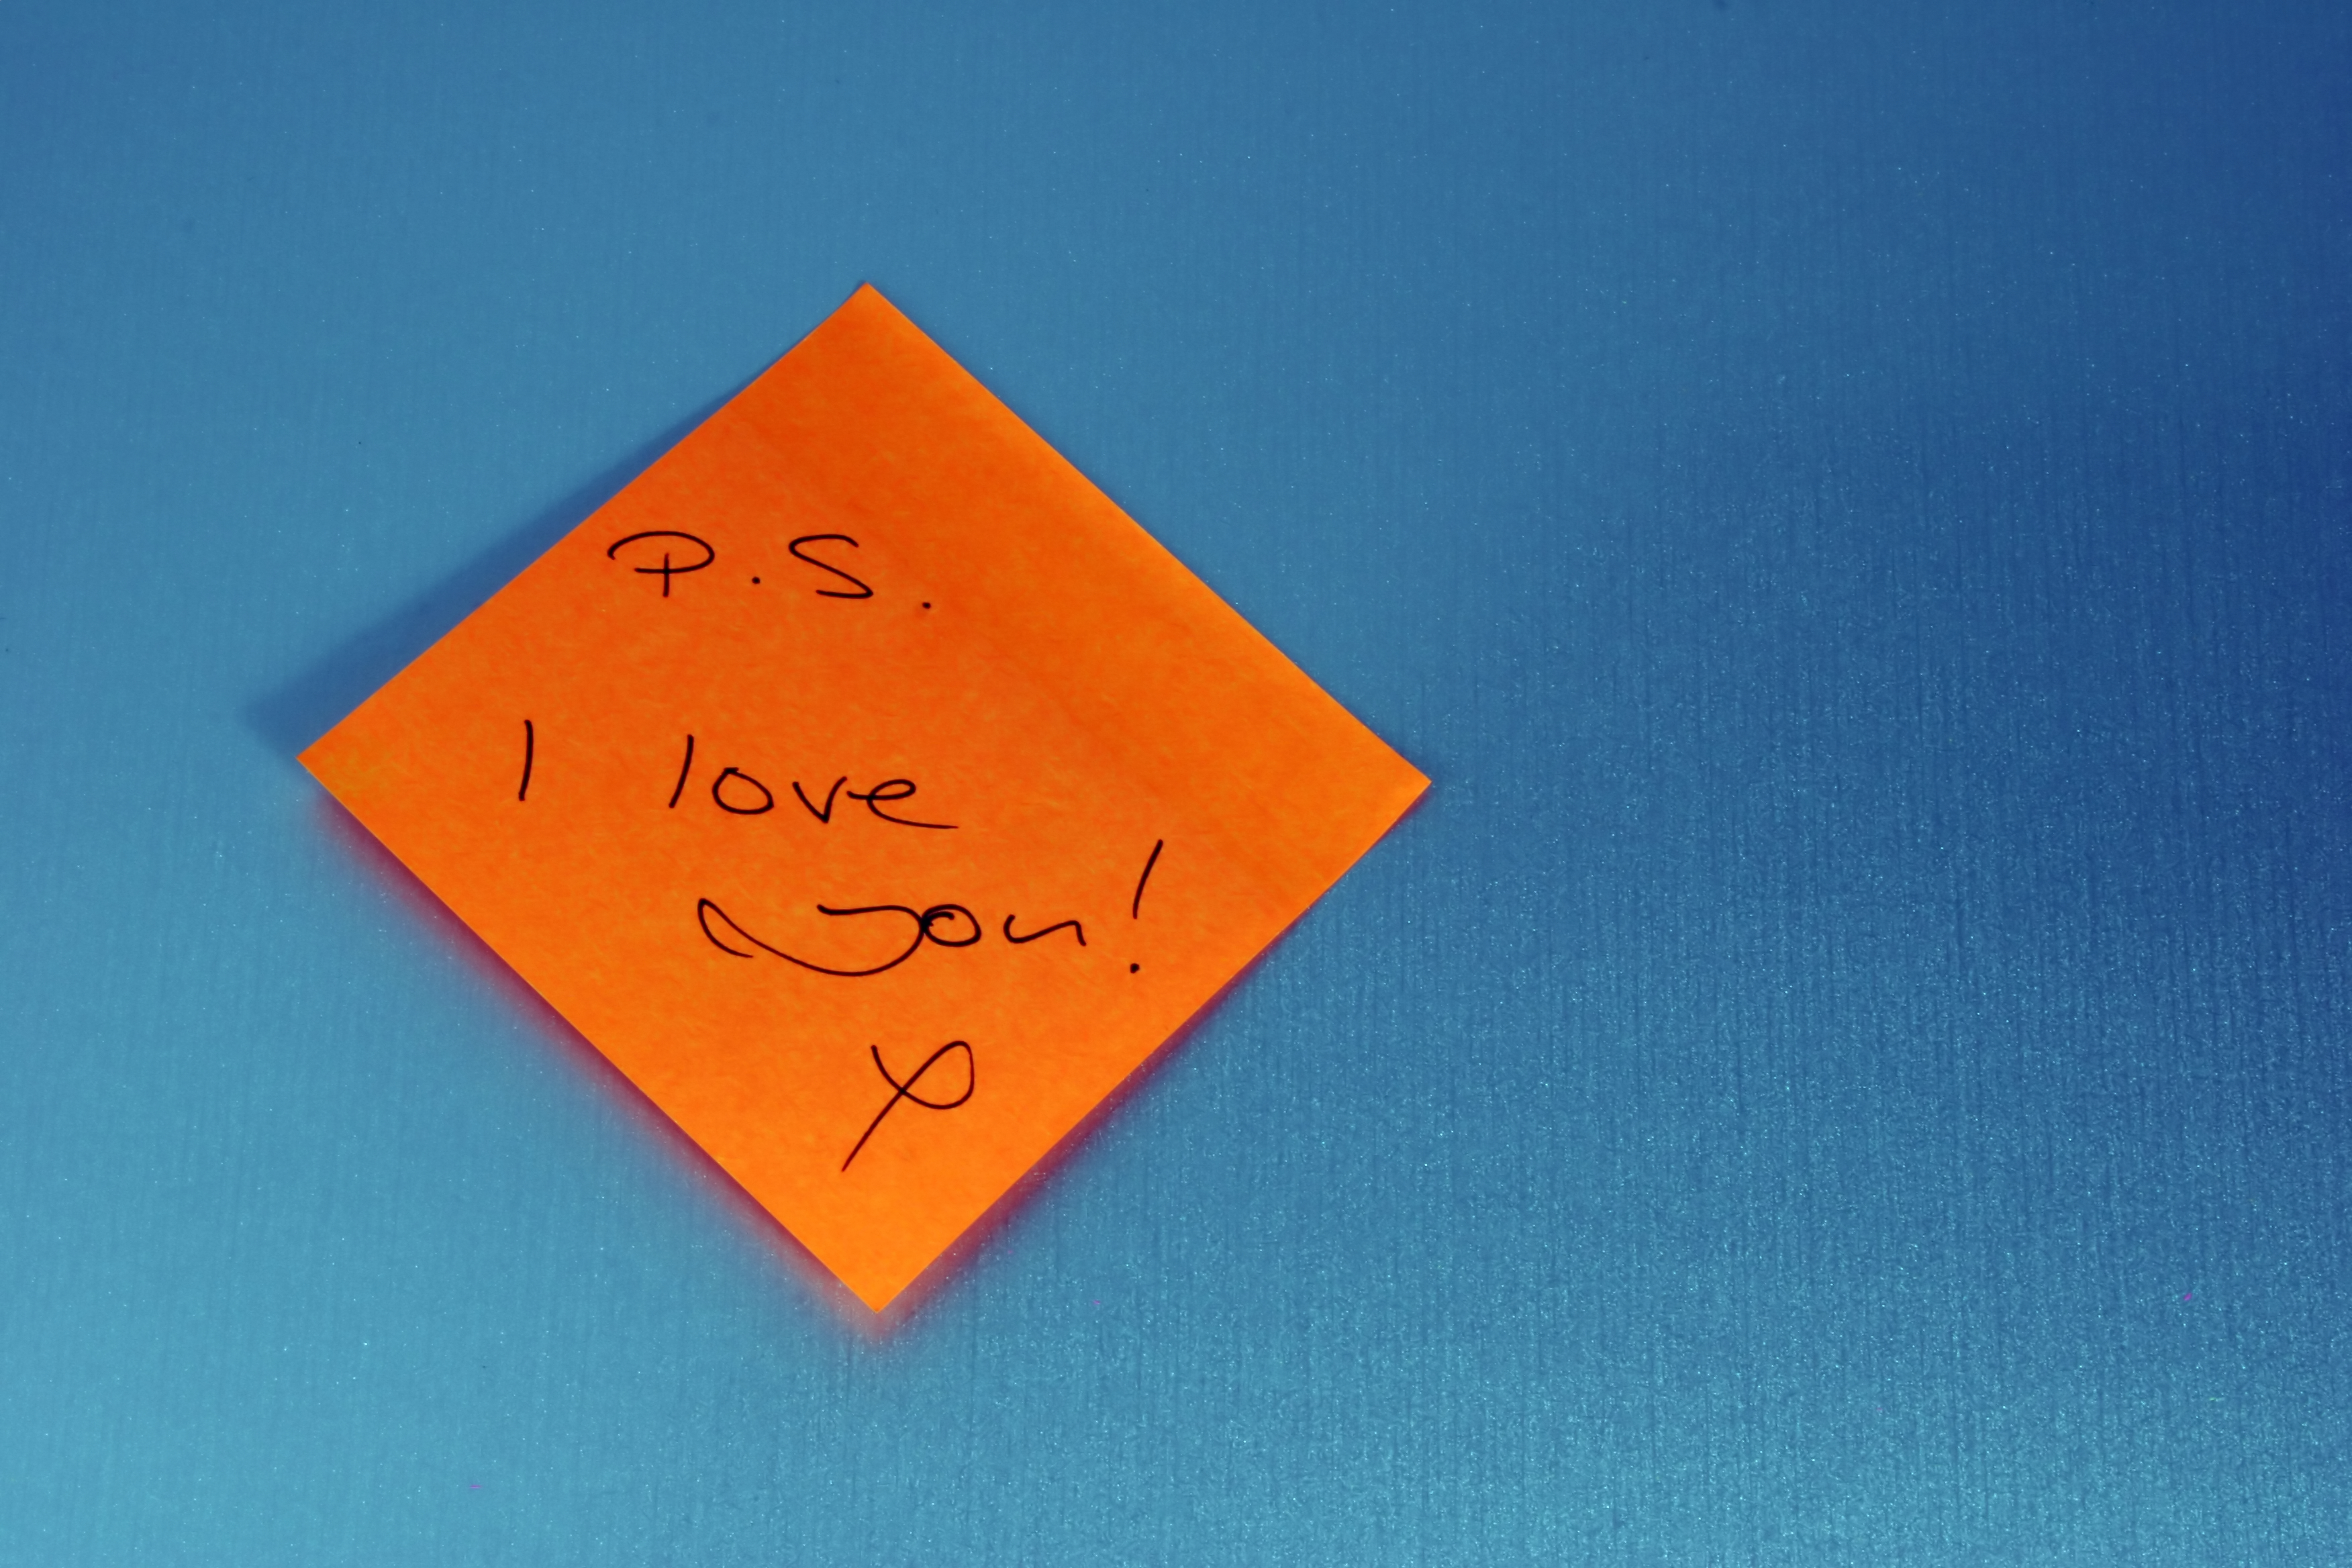 How a Post-It Note Changed My Life Forever